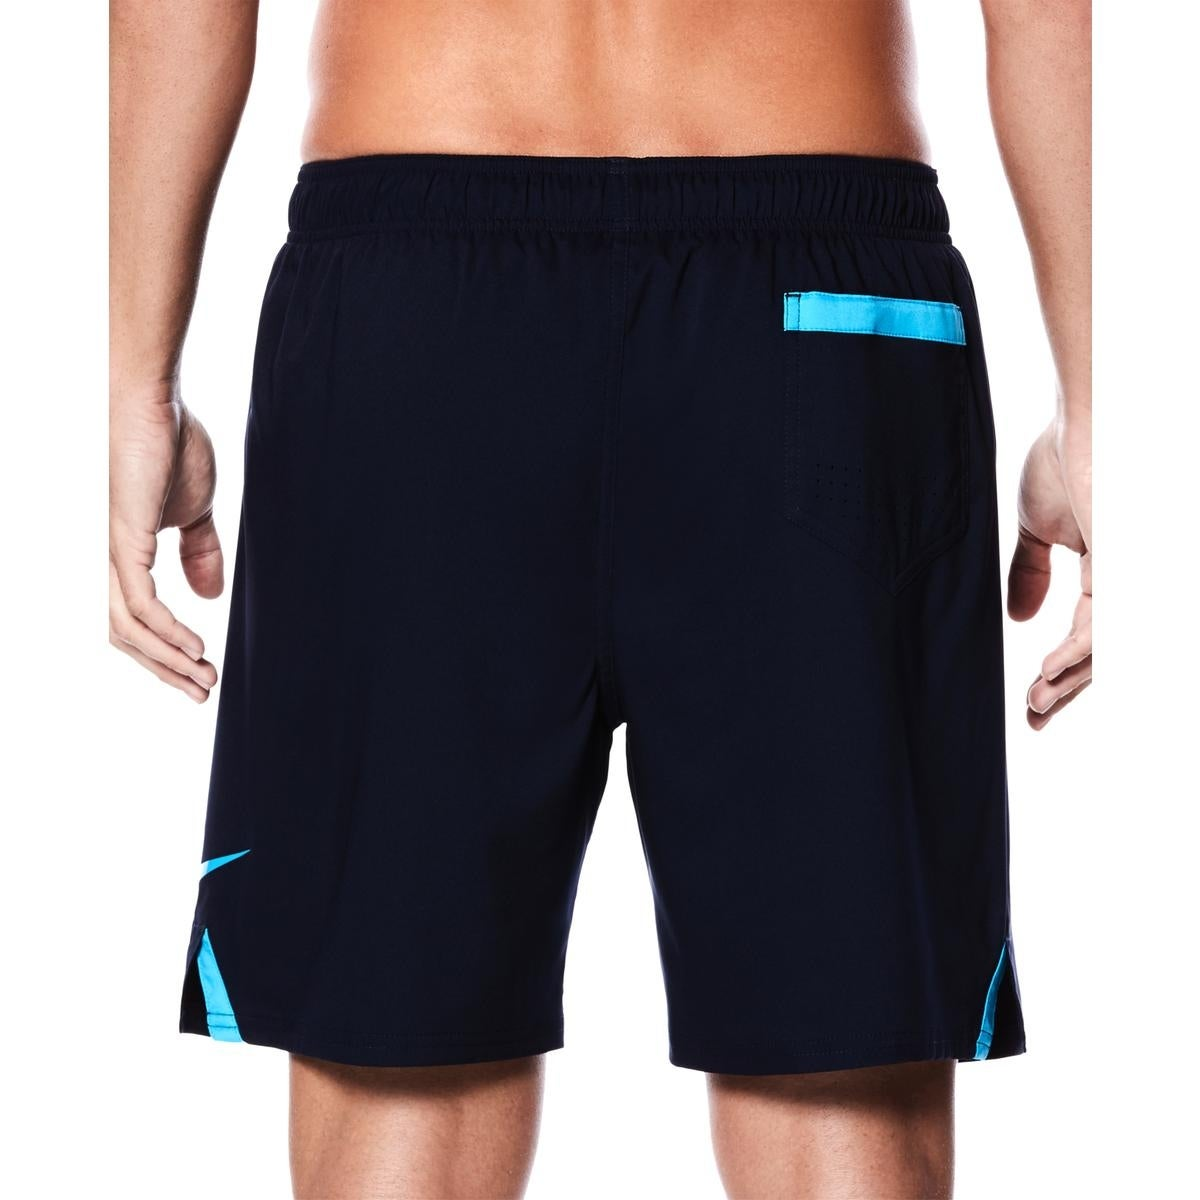 a3c559165a Shop Nike Mens Vital Board Shorts Beach Swim Trunks - Free Shipping On  Orders Over $45 - Overstock - 28382152